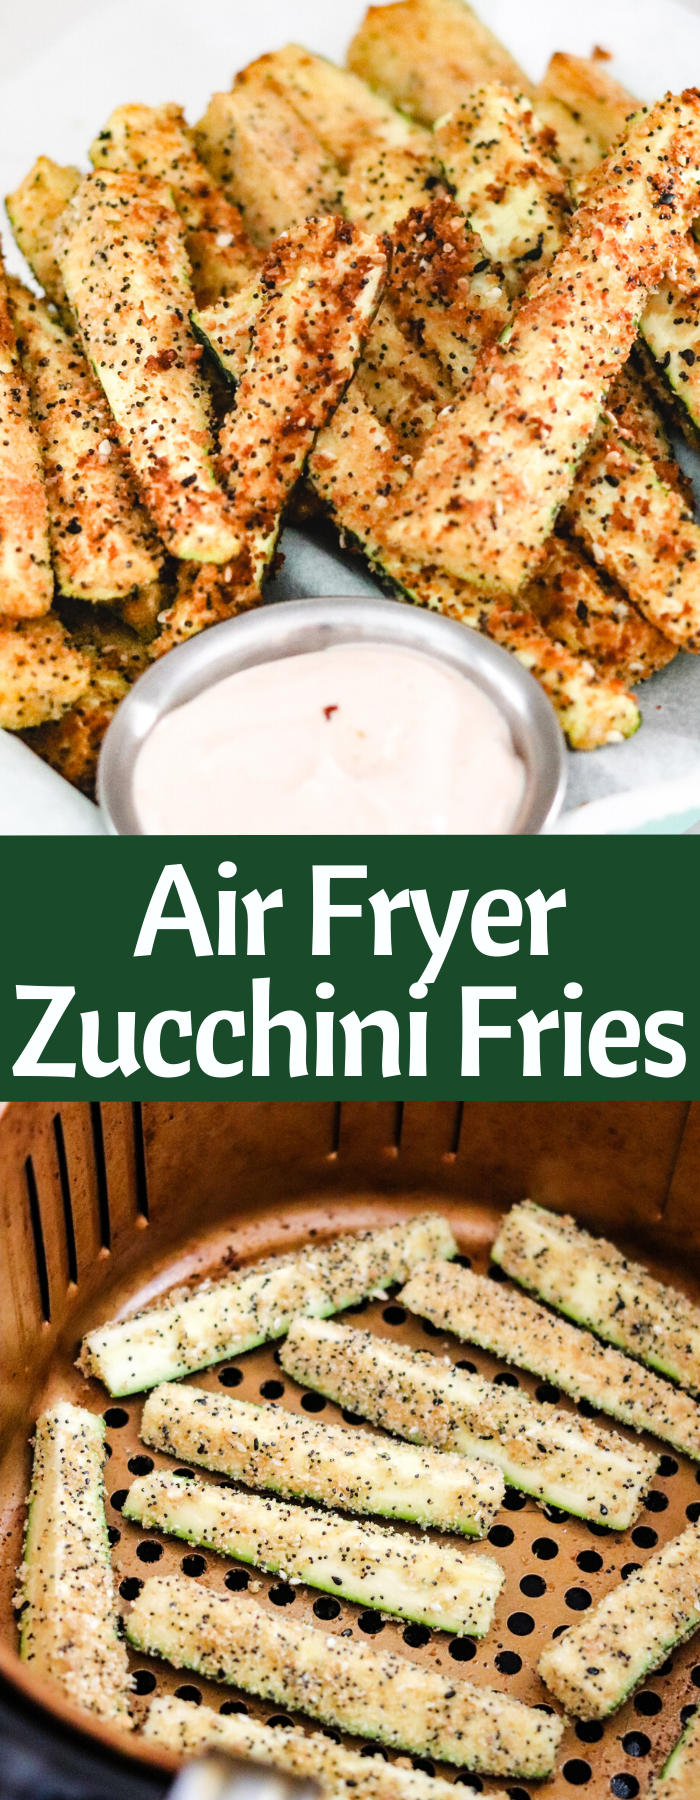 The crispy coating on these Air Fryer Zucchini Fries makes them perfect snack! With no oil and only a handful of ingredients, they're easy and guilt-free with only 121 calories per serving!